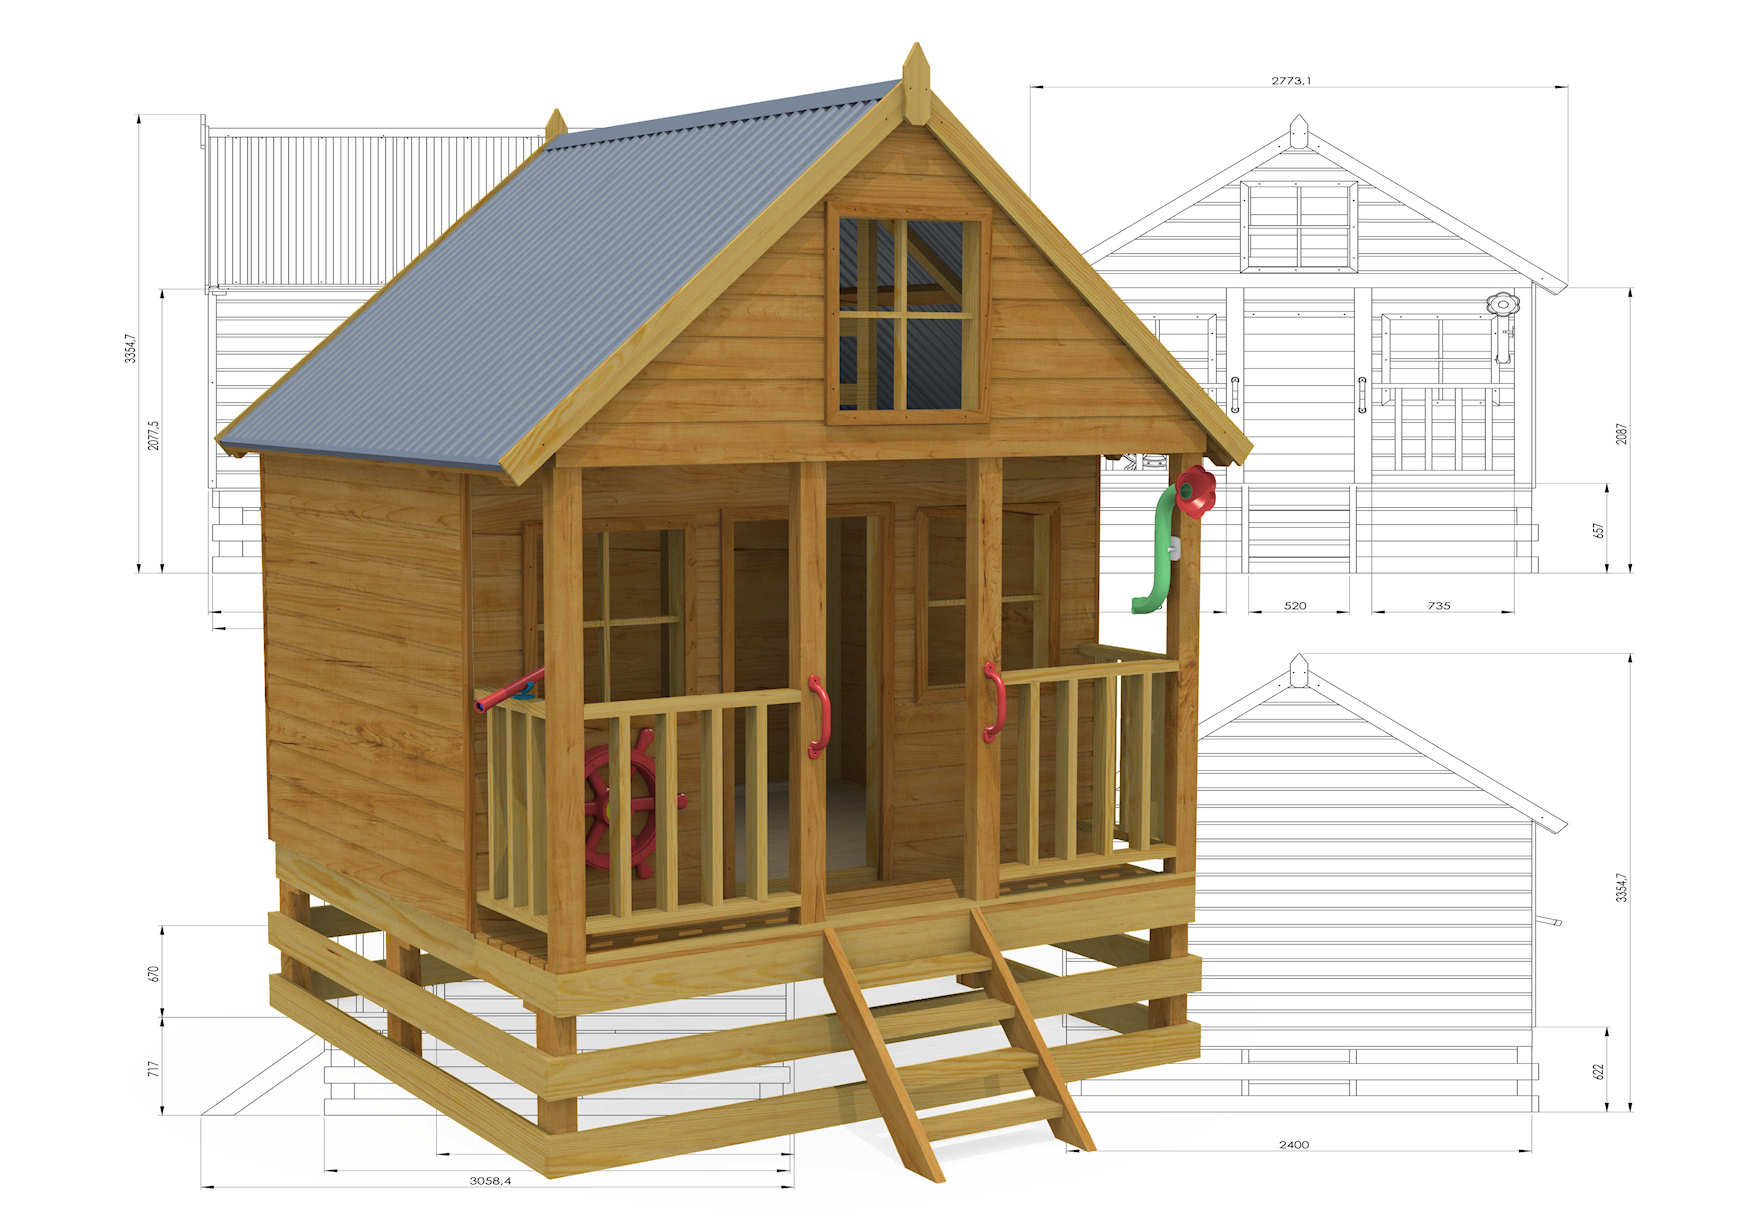 Country Cottage Cubby House together with Flypage tpl in addition Rainbow Lodge Deluxe together with 40640709 together with 873 Bookshelf Slanted Front Storage Box. on outdoor wooden rockers